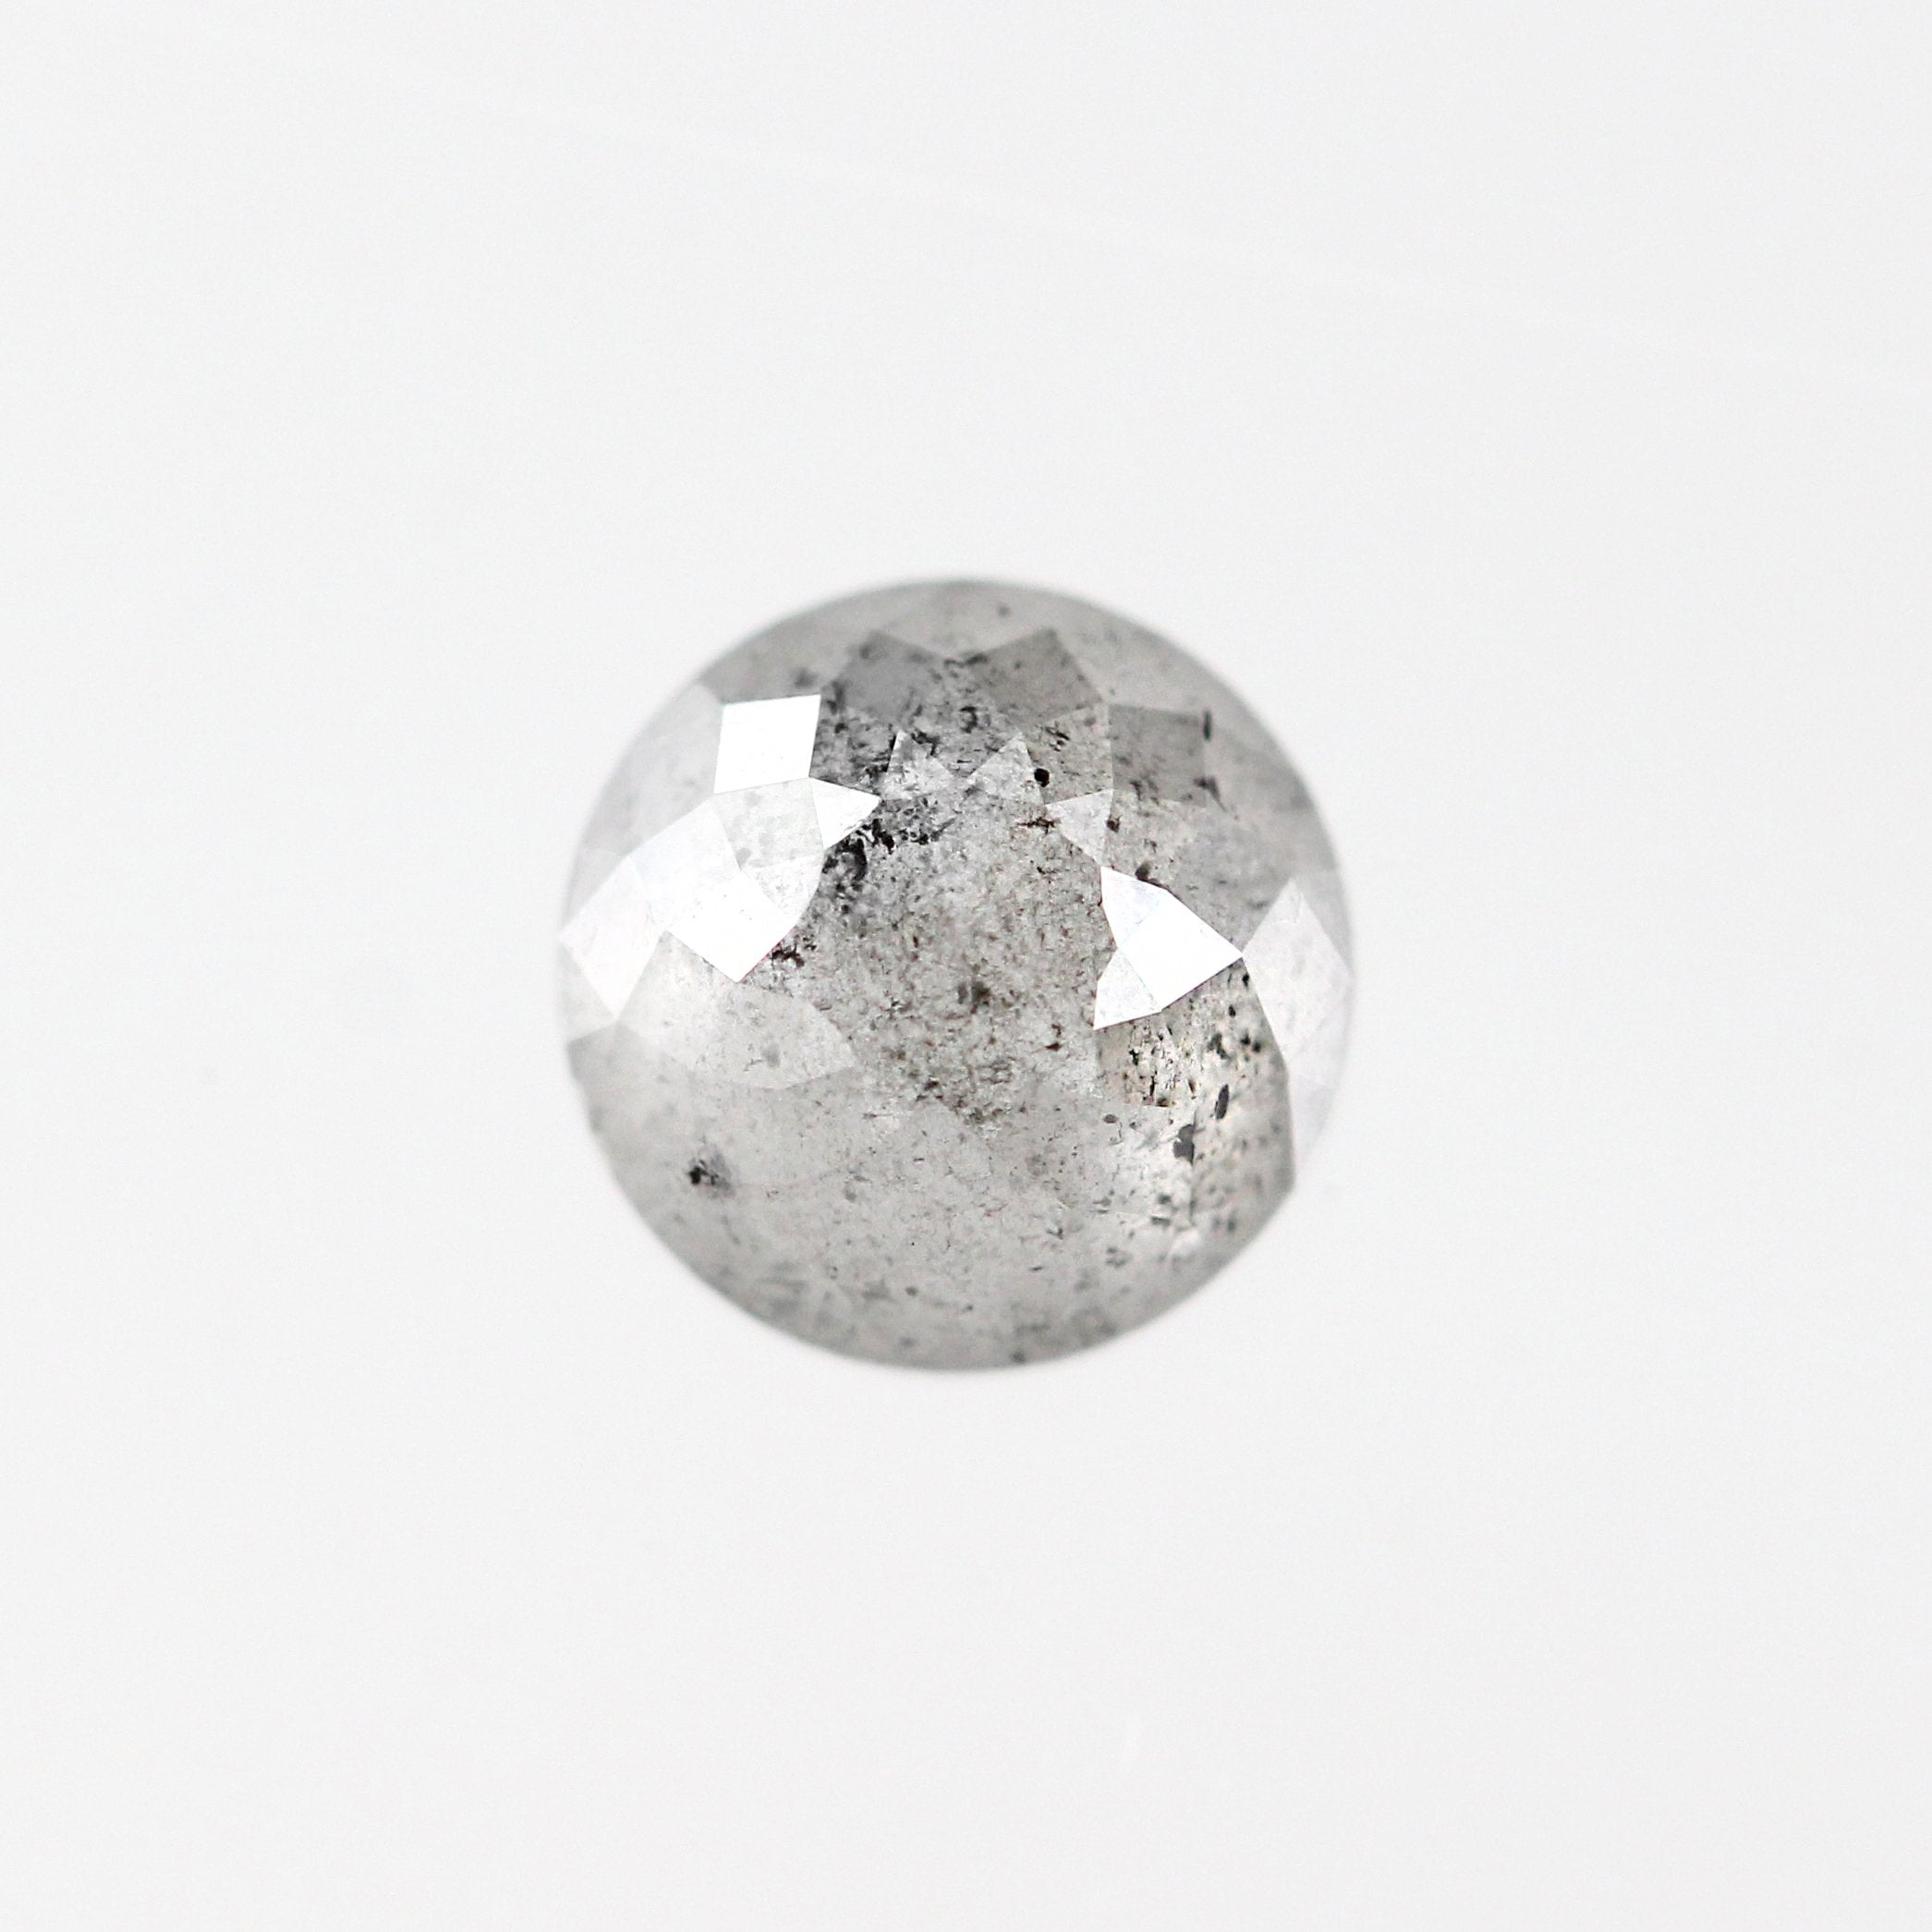 1.08 carat Celestial Rose Cut Round Diamond - Inventory Code RR108